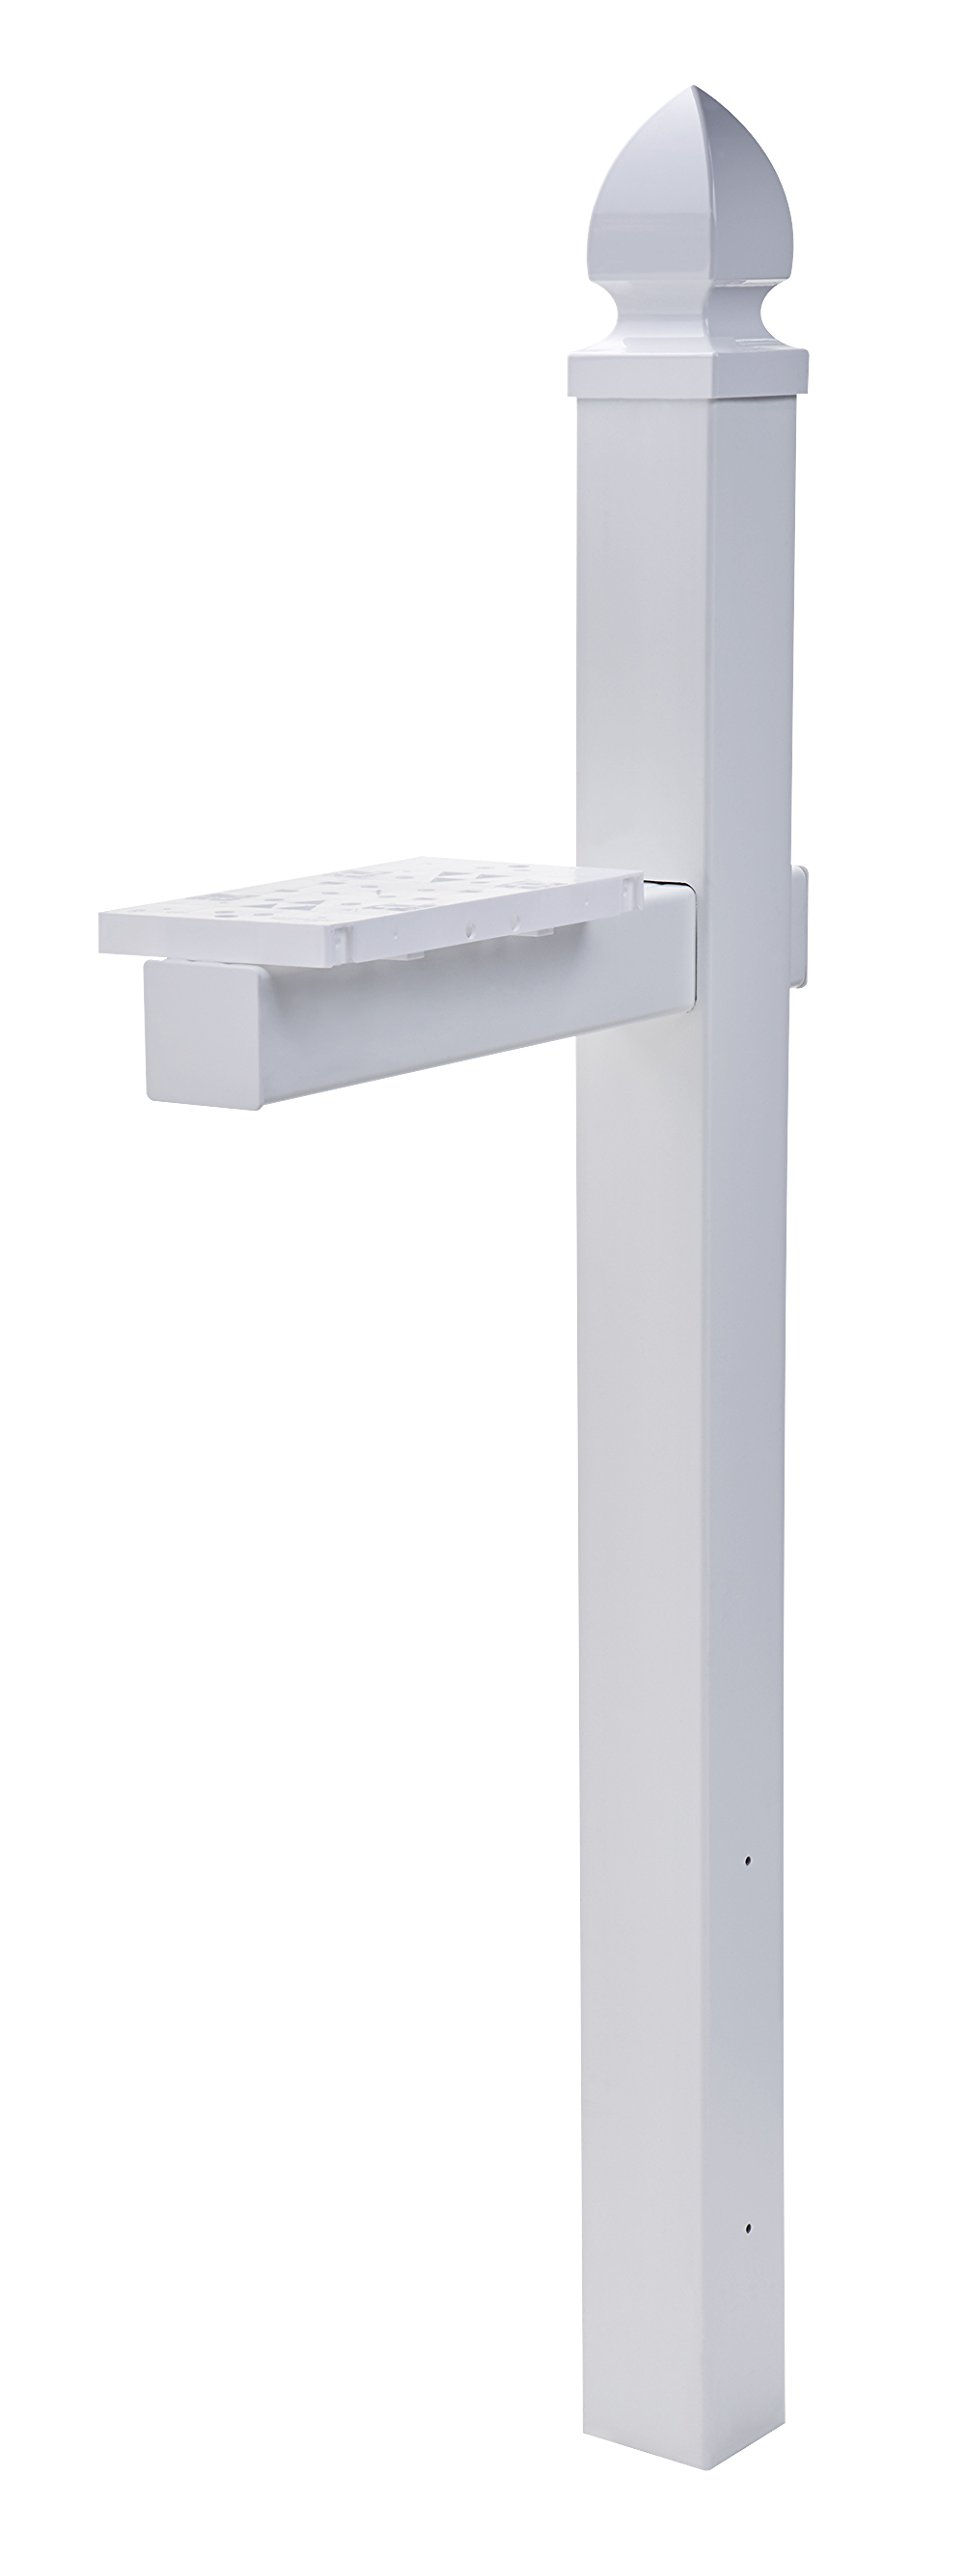 Gibraltar Mailboxes Whitley 4x4 Rust-Proof Plastic White,  Cross-Arm Mailbox Post, WP000W01